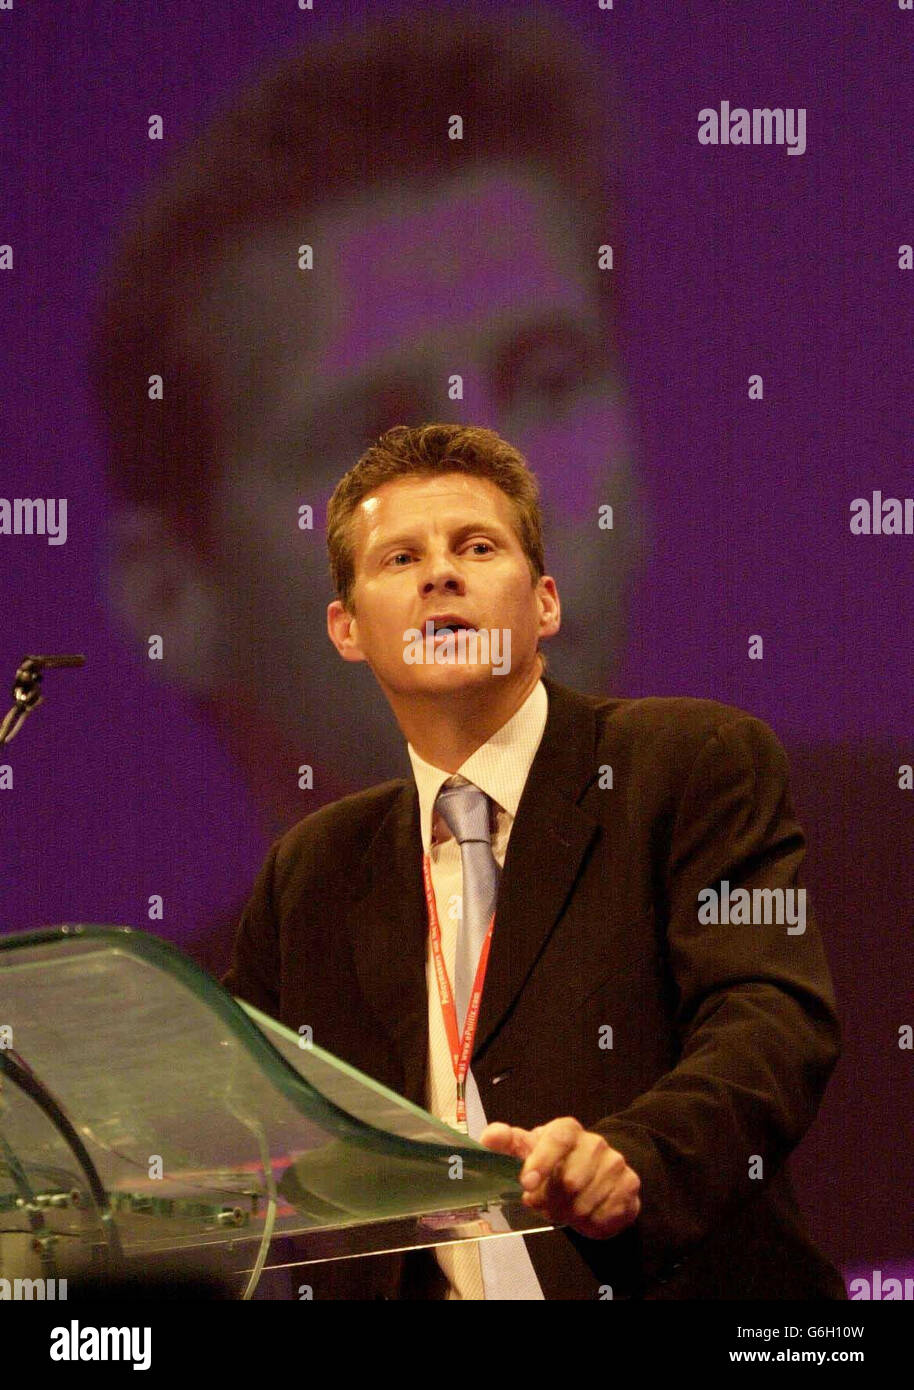 LABOUR Conference Cram - Stock Image